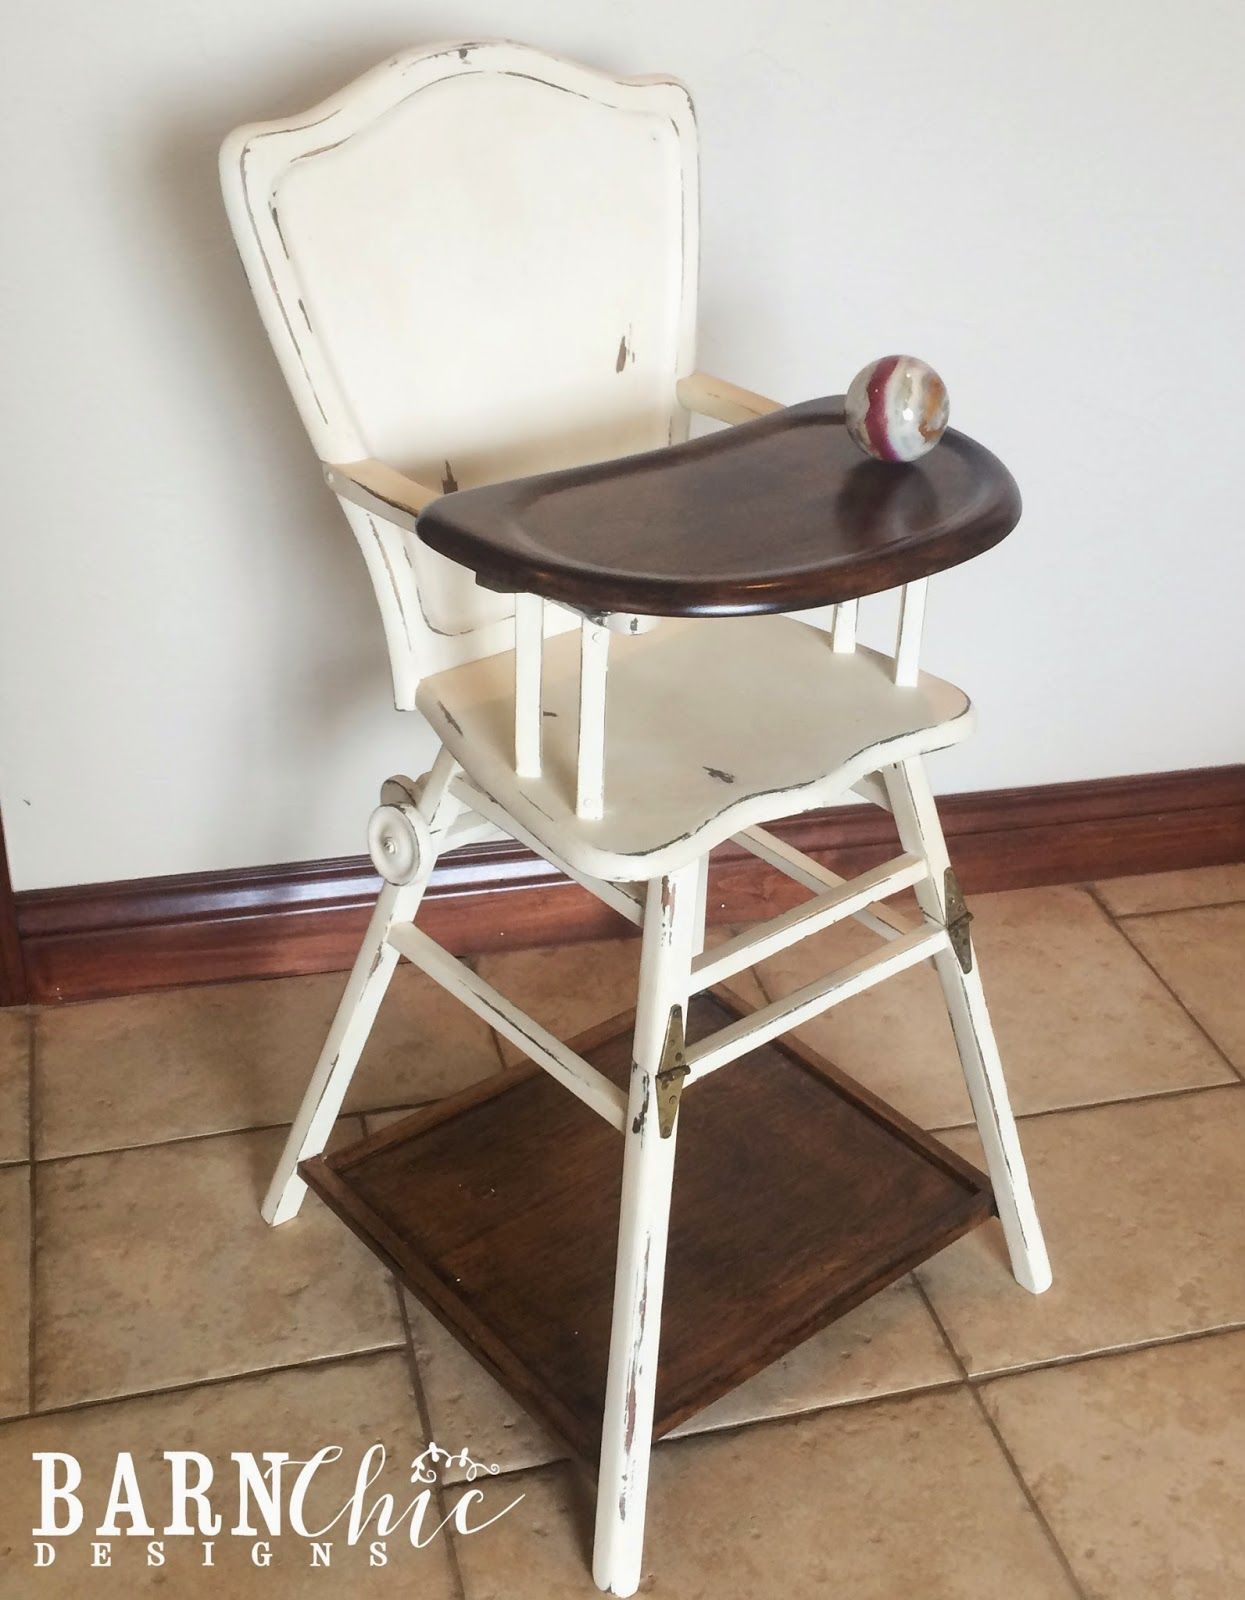 Refinished antique old wooden high chair by Barn Chic Designs. Two toned  refurbished high chair in Dark walnut stain and Annie Sloan Chalk Paint. - Refinished Antique Old Wooden High Chair By Barn Chic Designs. Two